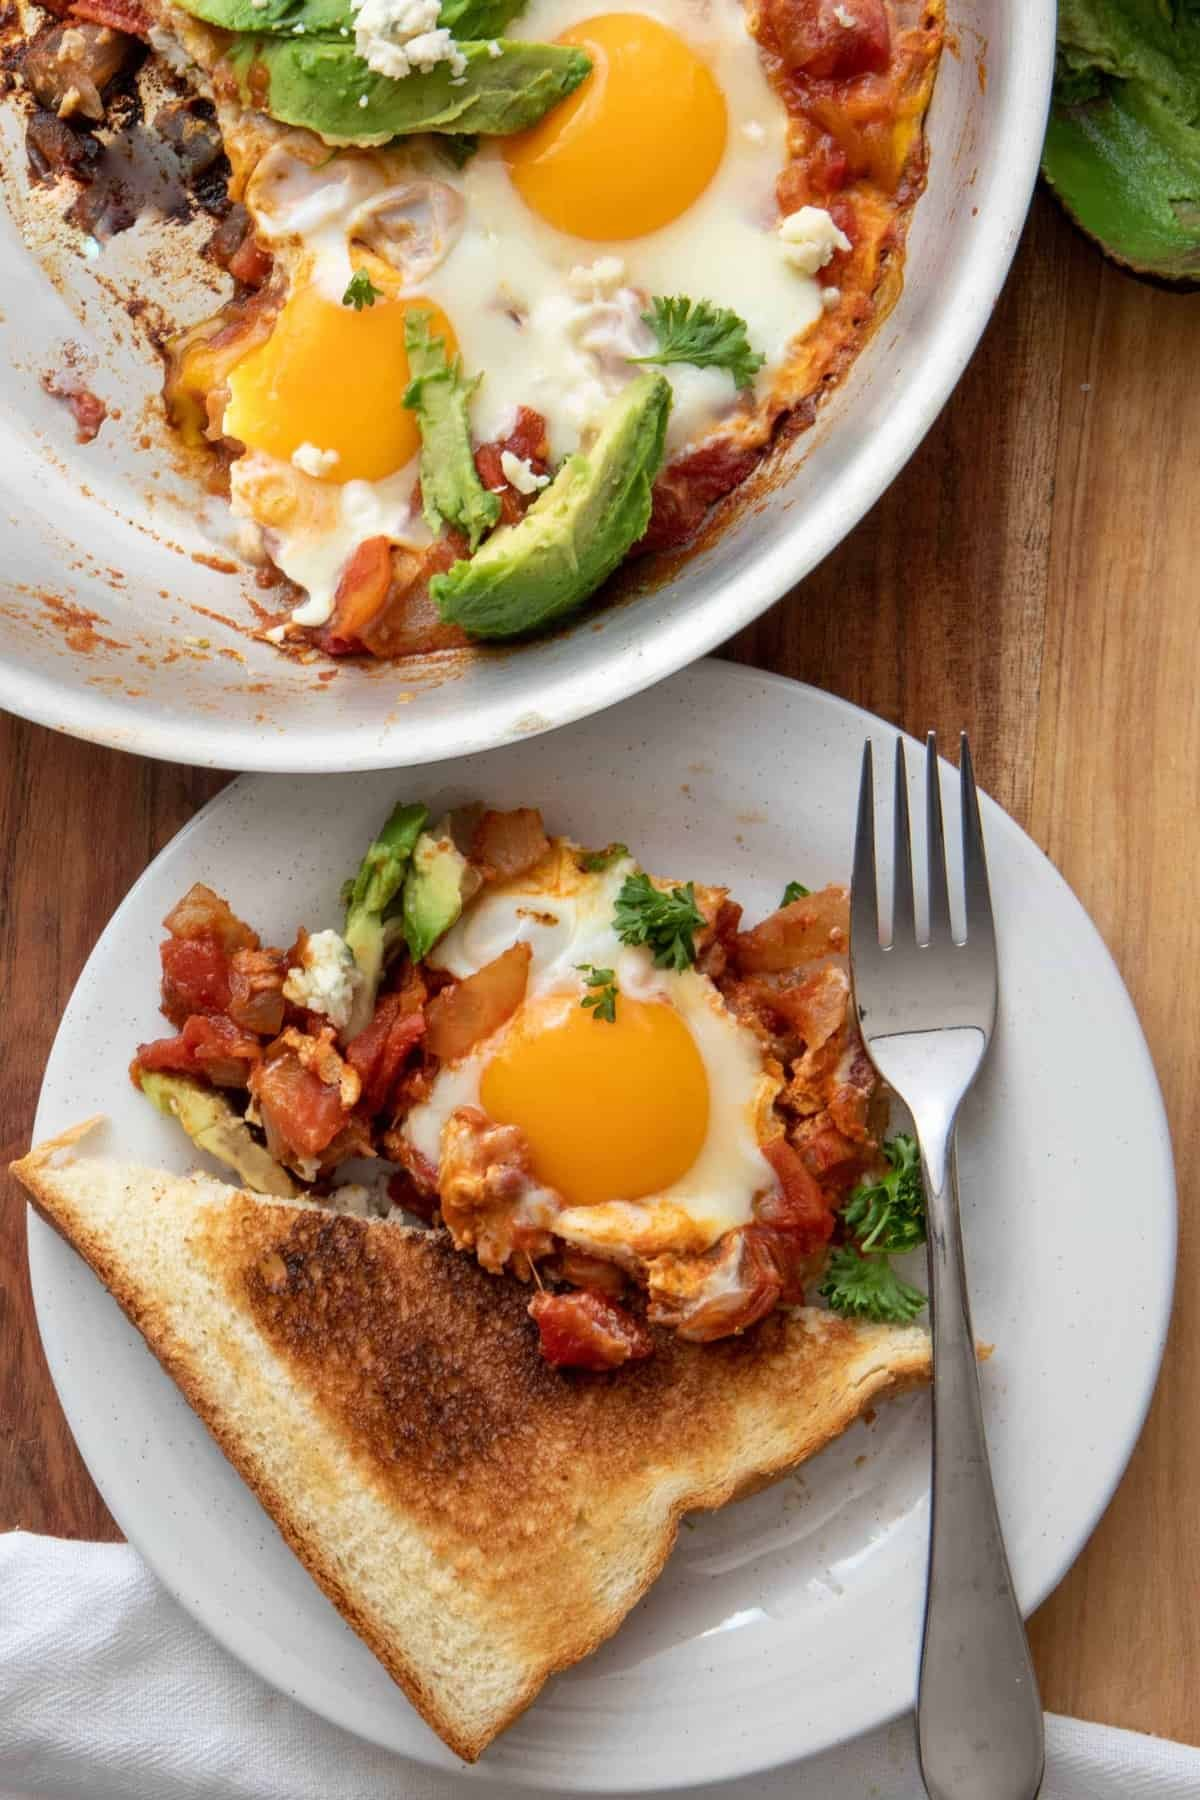 Plate of Moroccan Shakshuka with perfect runny yolks